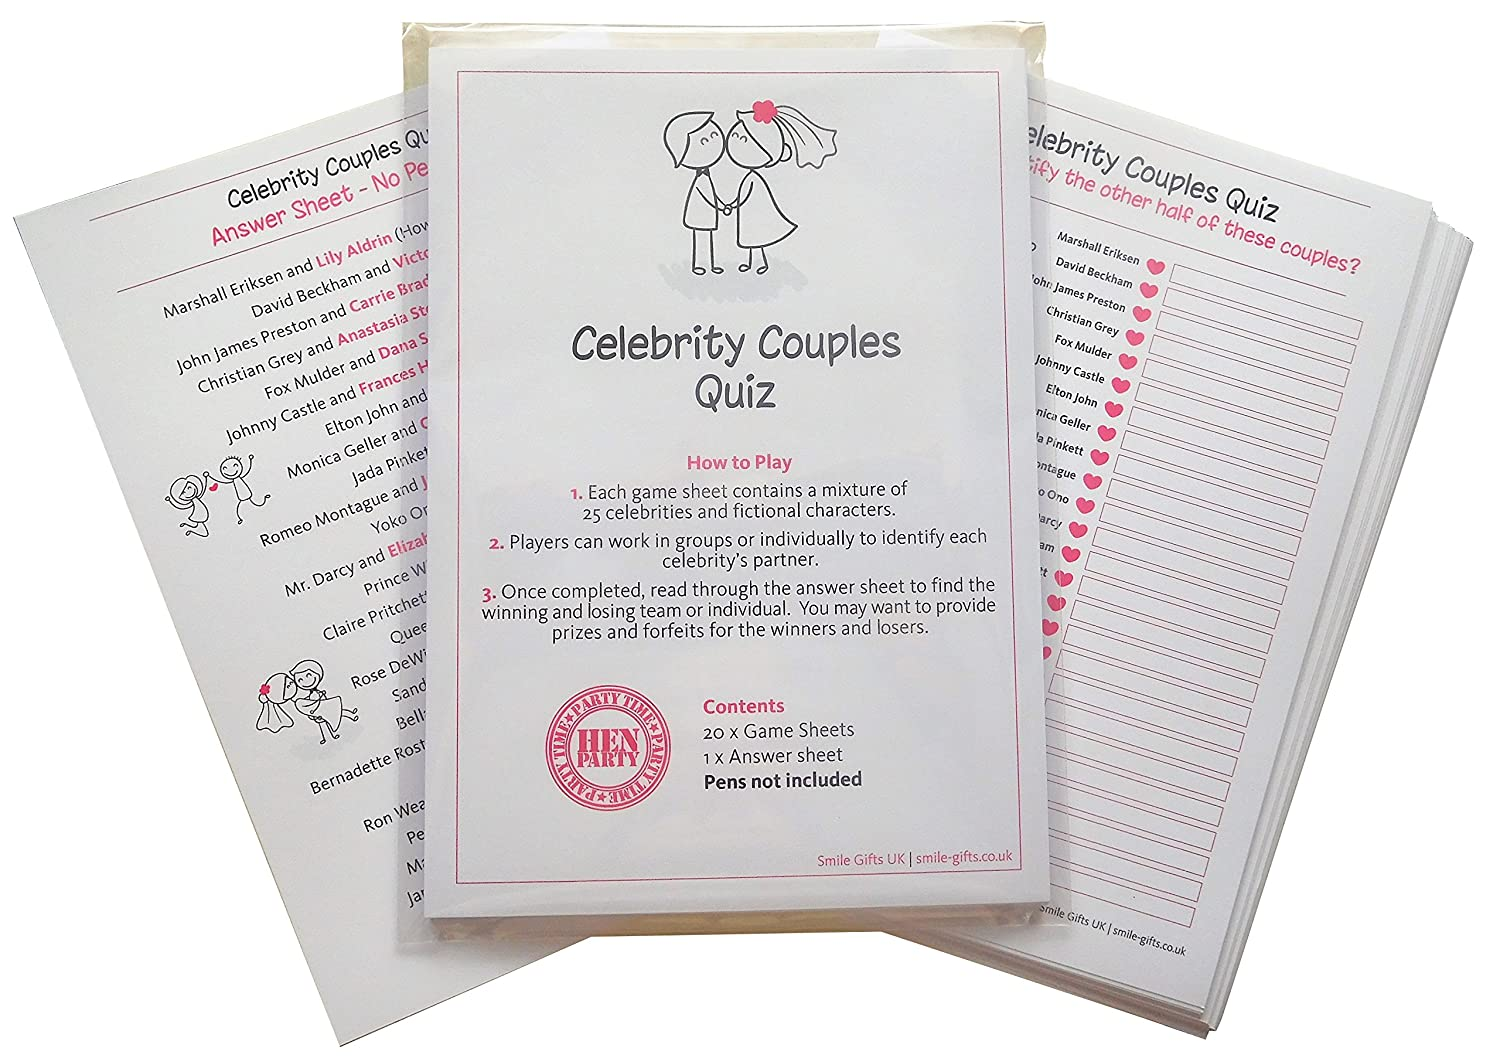 bbba222e9b3 SMILE GIFTS UK Hen Night Celebrity Couples Quiz Game including 20 Game Cards  (plus answer sheet)- Get your night going with Hen Party Games